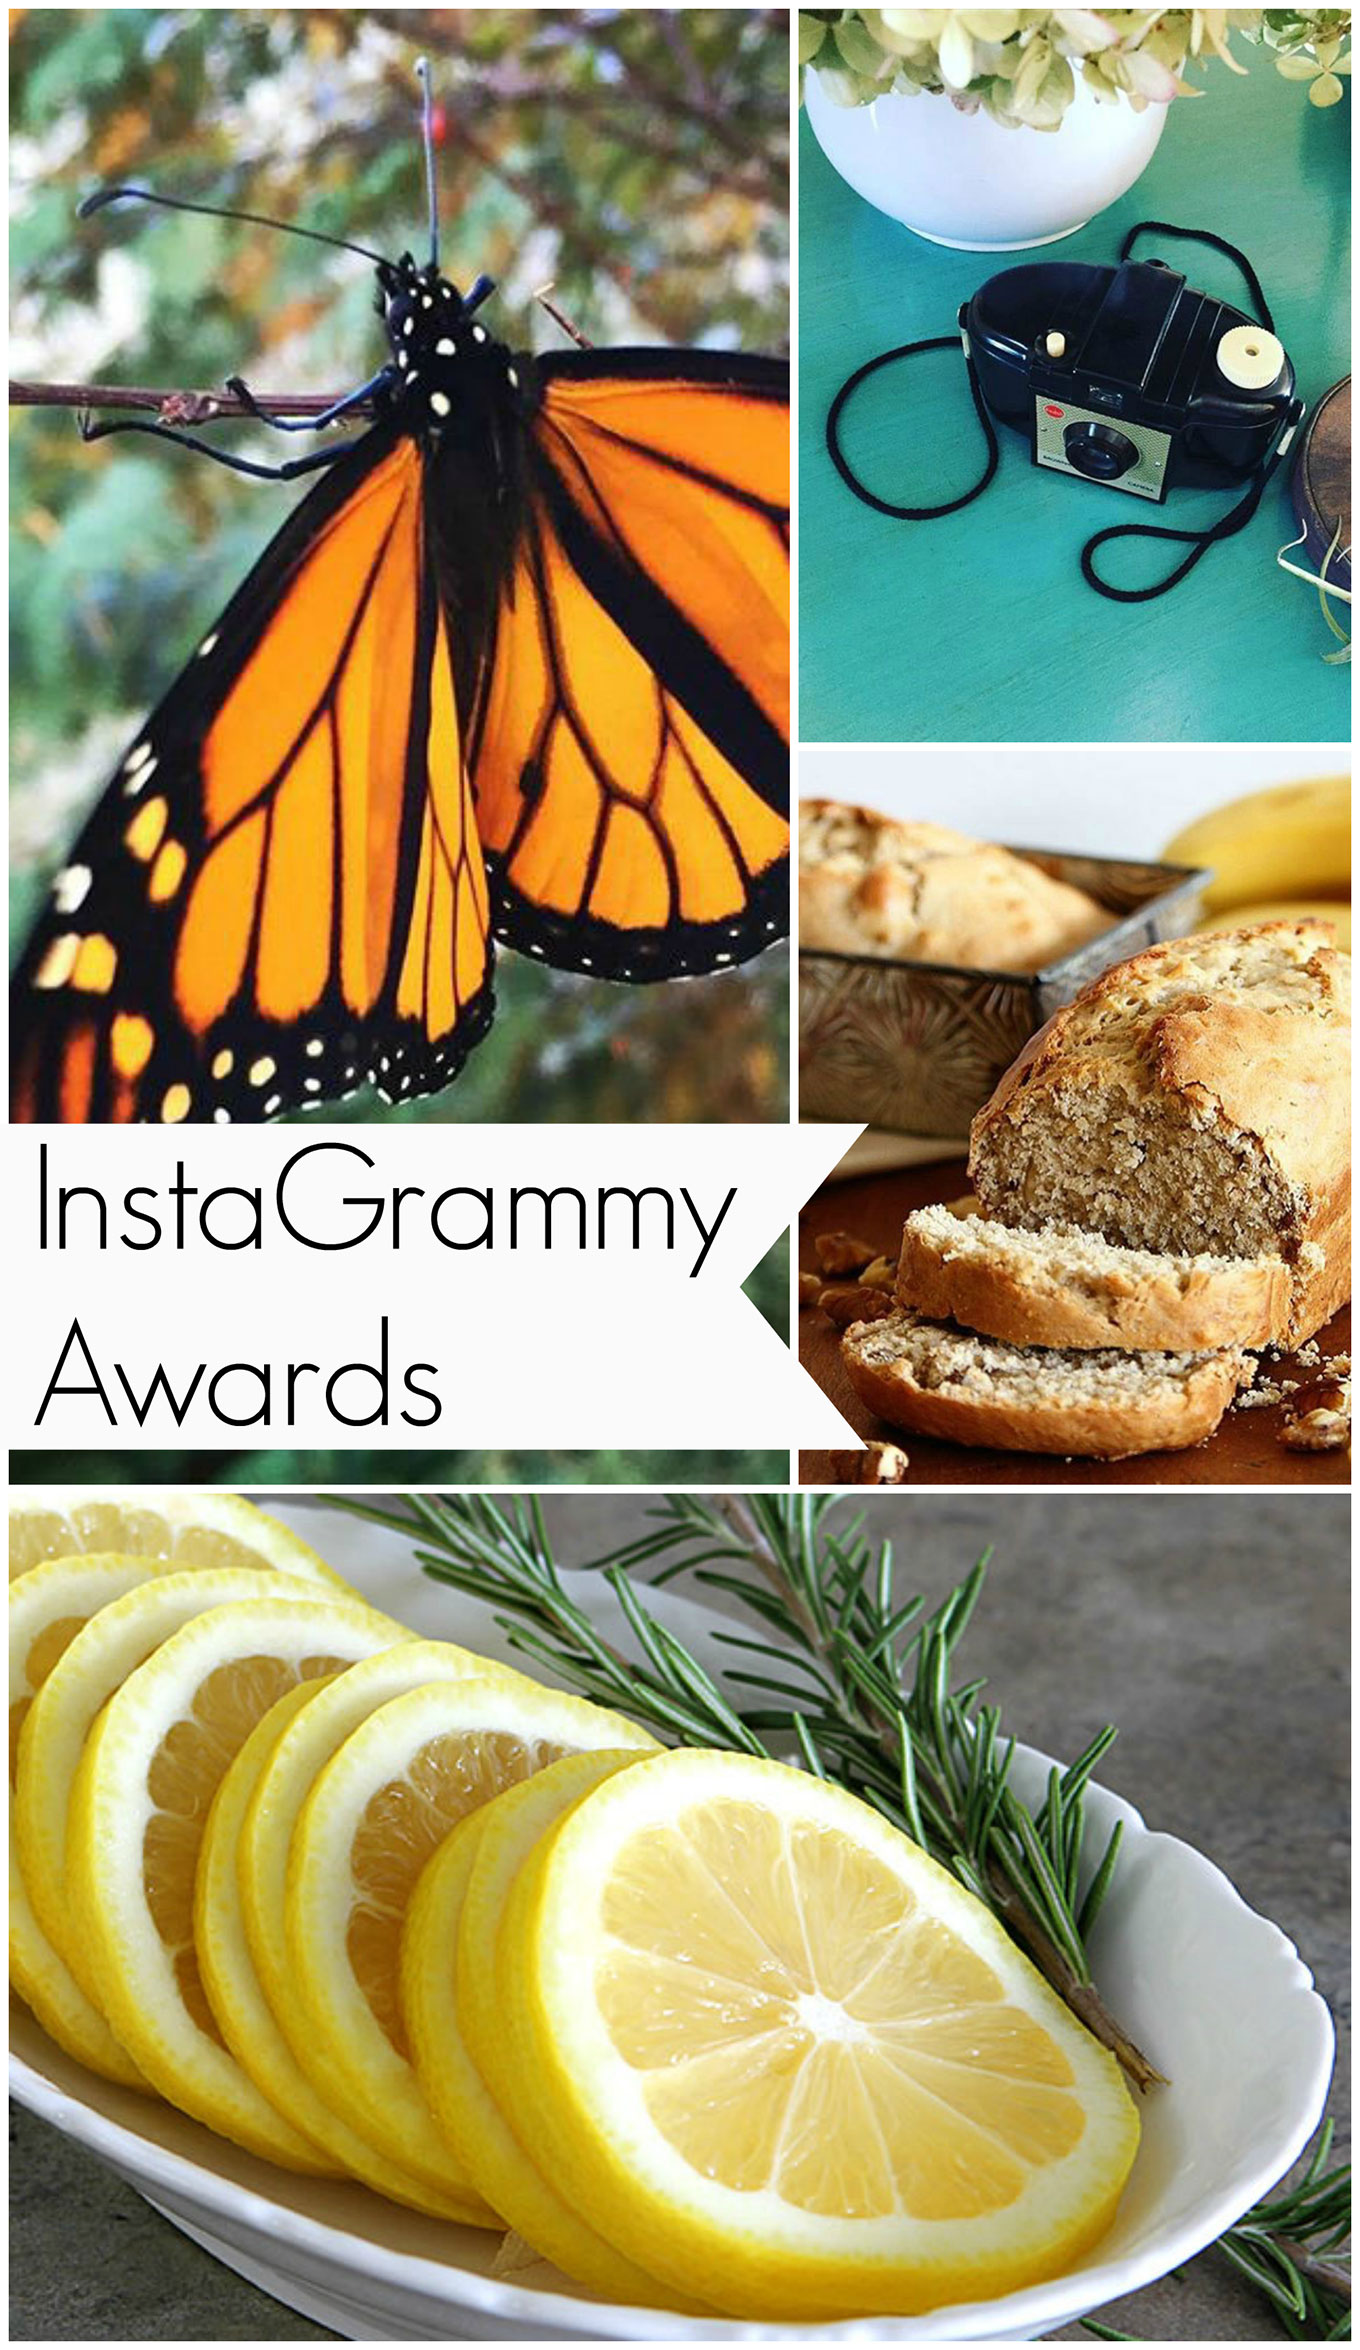 The Grammy Awards for Instagram aka the InstaGrammys is where I showcase my top photos from Instagram this year and give myself a trophy or two.